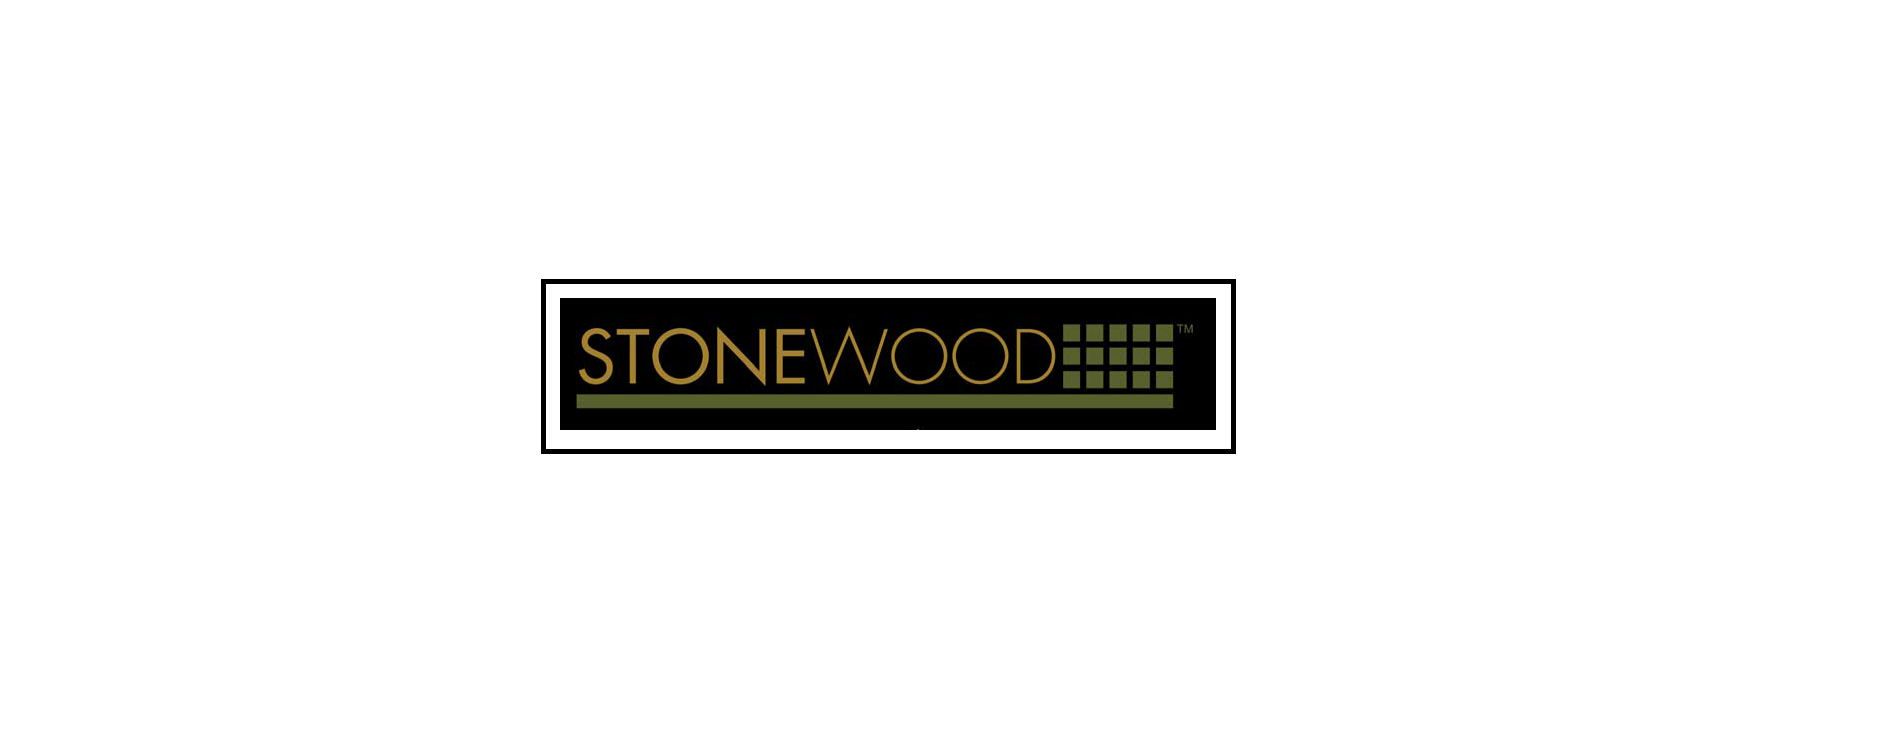 Beautify your Home or Office with flooring from Stonewood Floors.  We offer a wide range of materials and styles to meet every budget and preference. And our 50-Year Limited Warranty means your investment will stand the test of time.